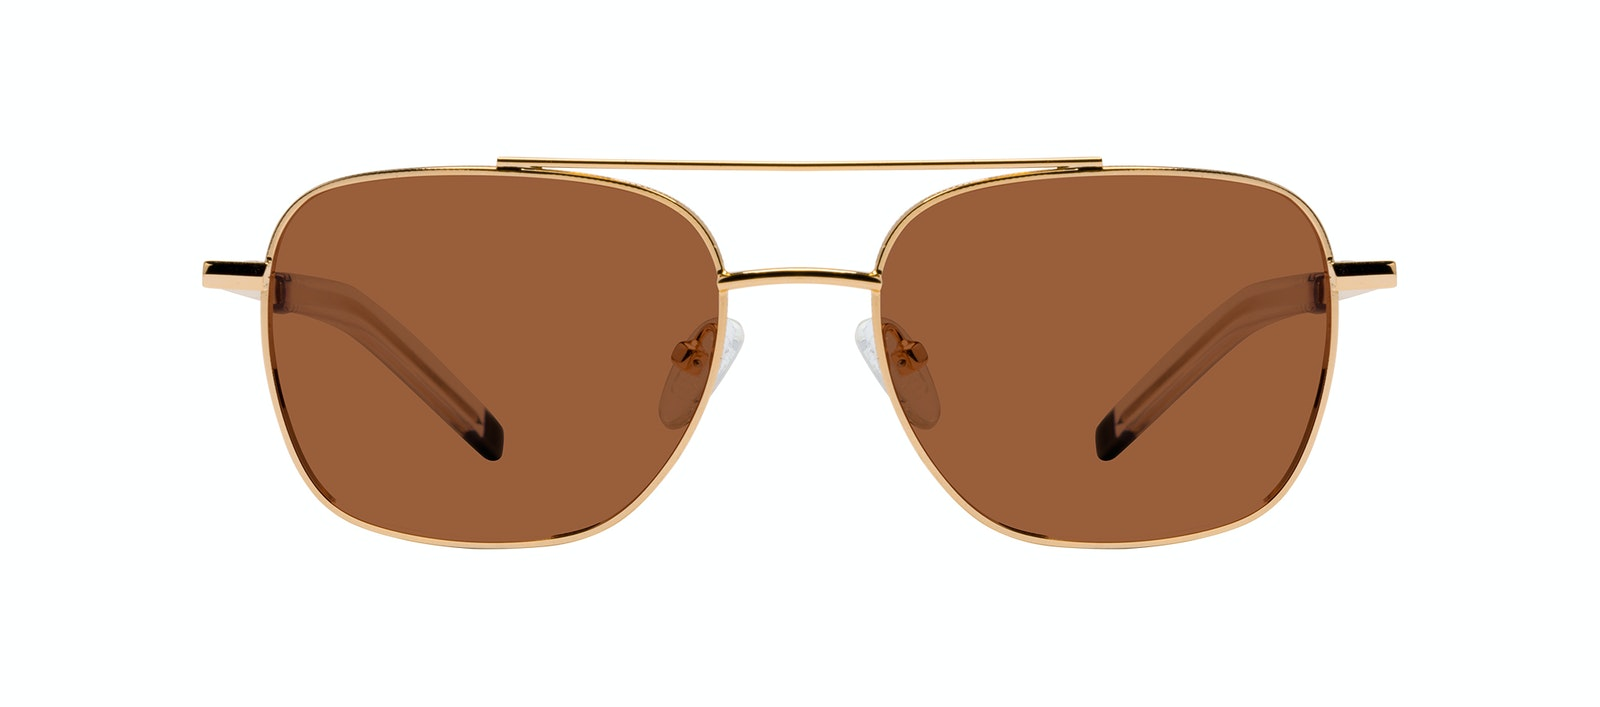 Affordable Fashion Glasses Aviator Sunglasses Men Drift Gold Front